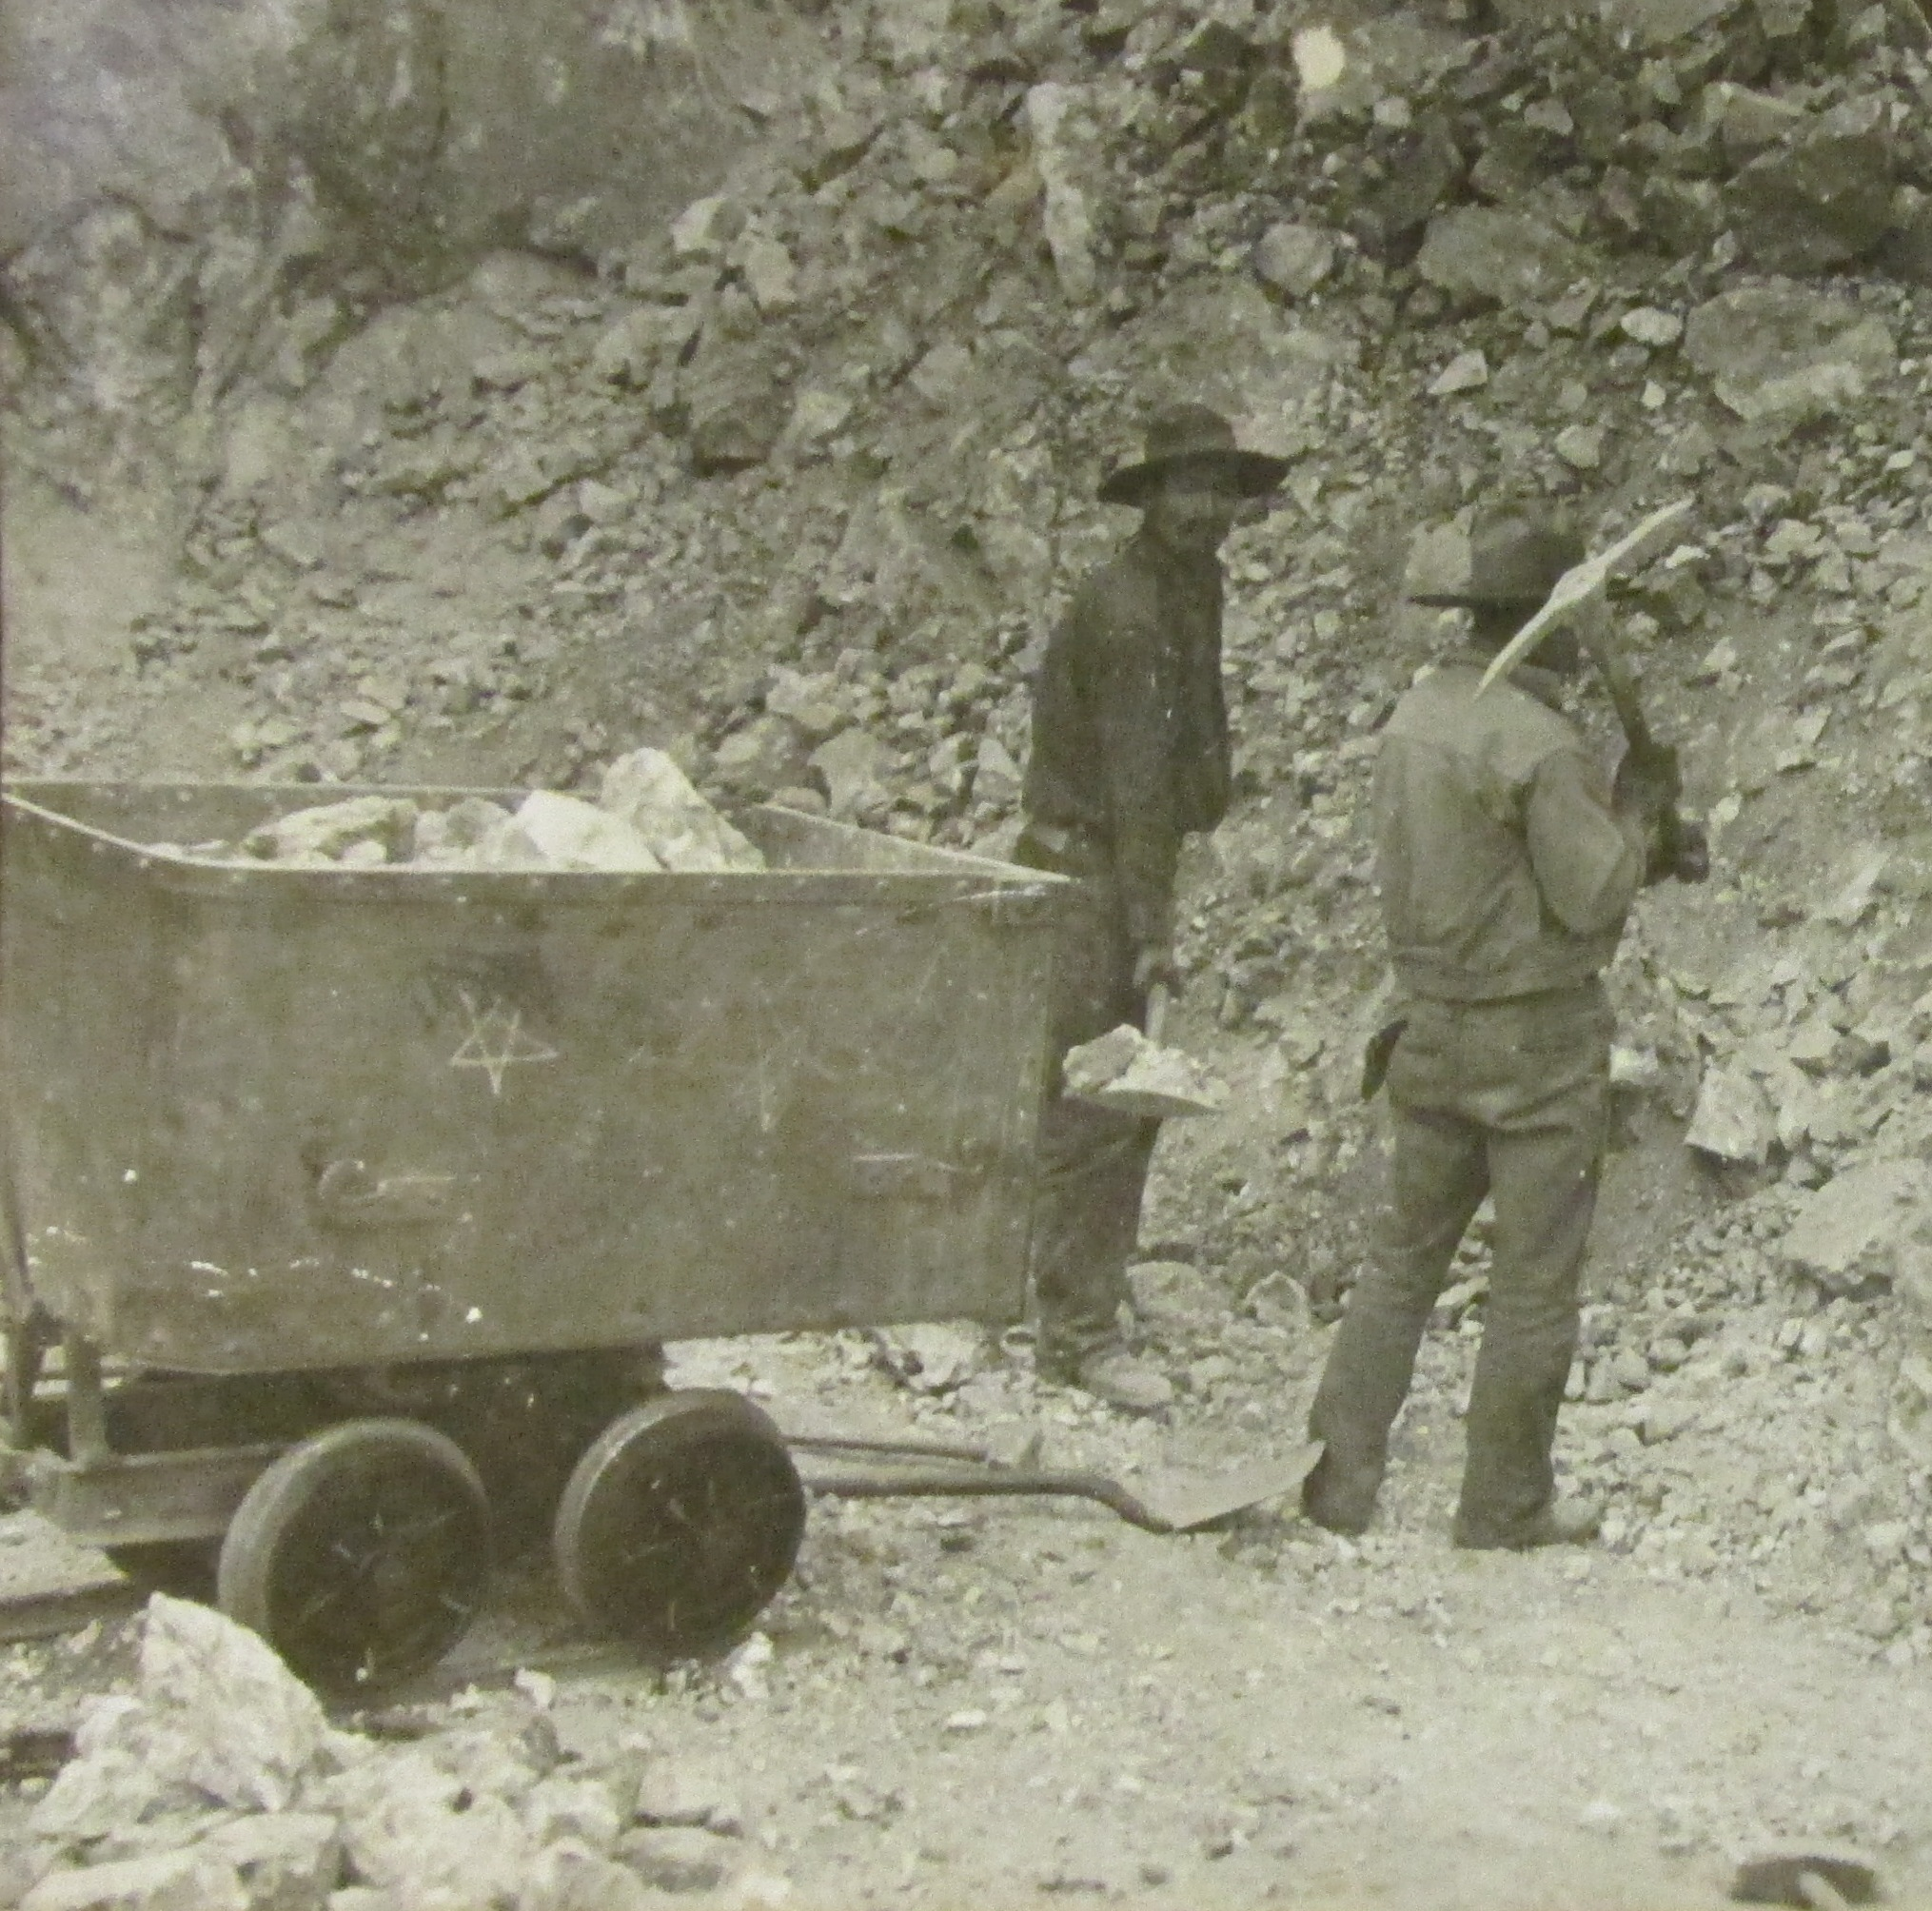 Mining the old fashioned way